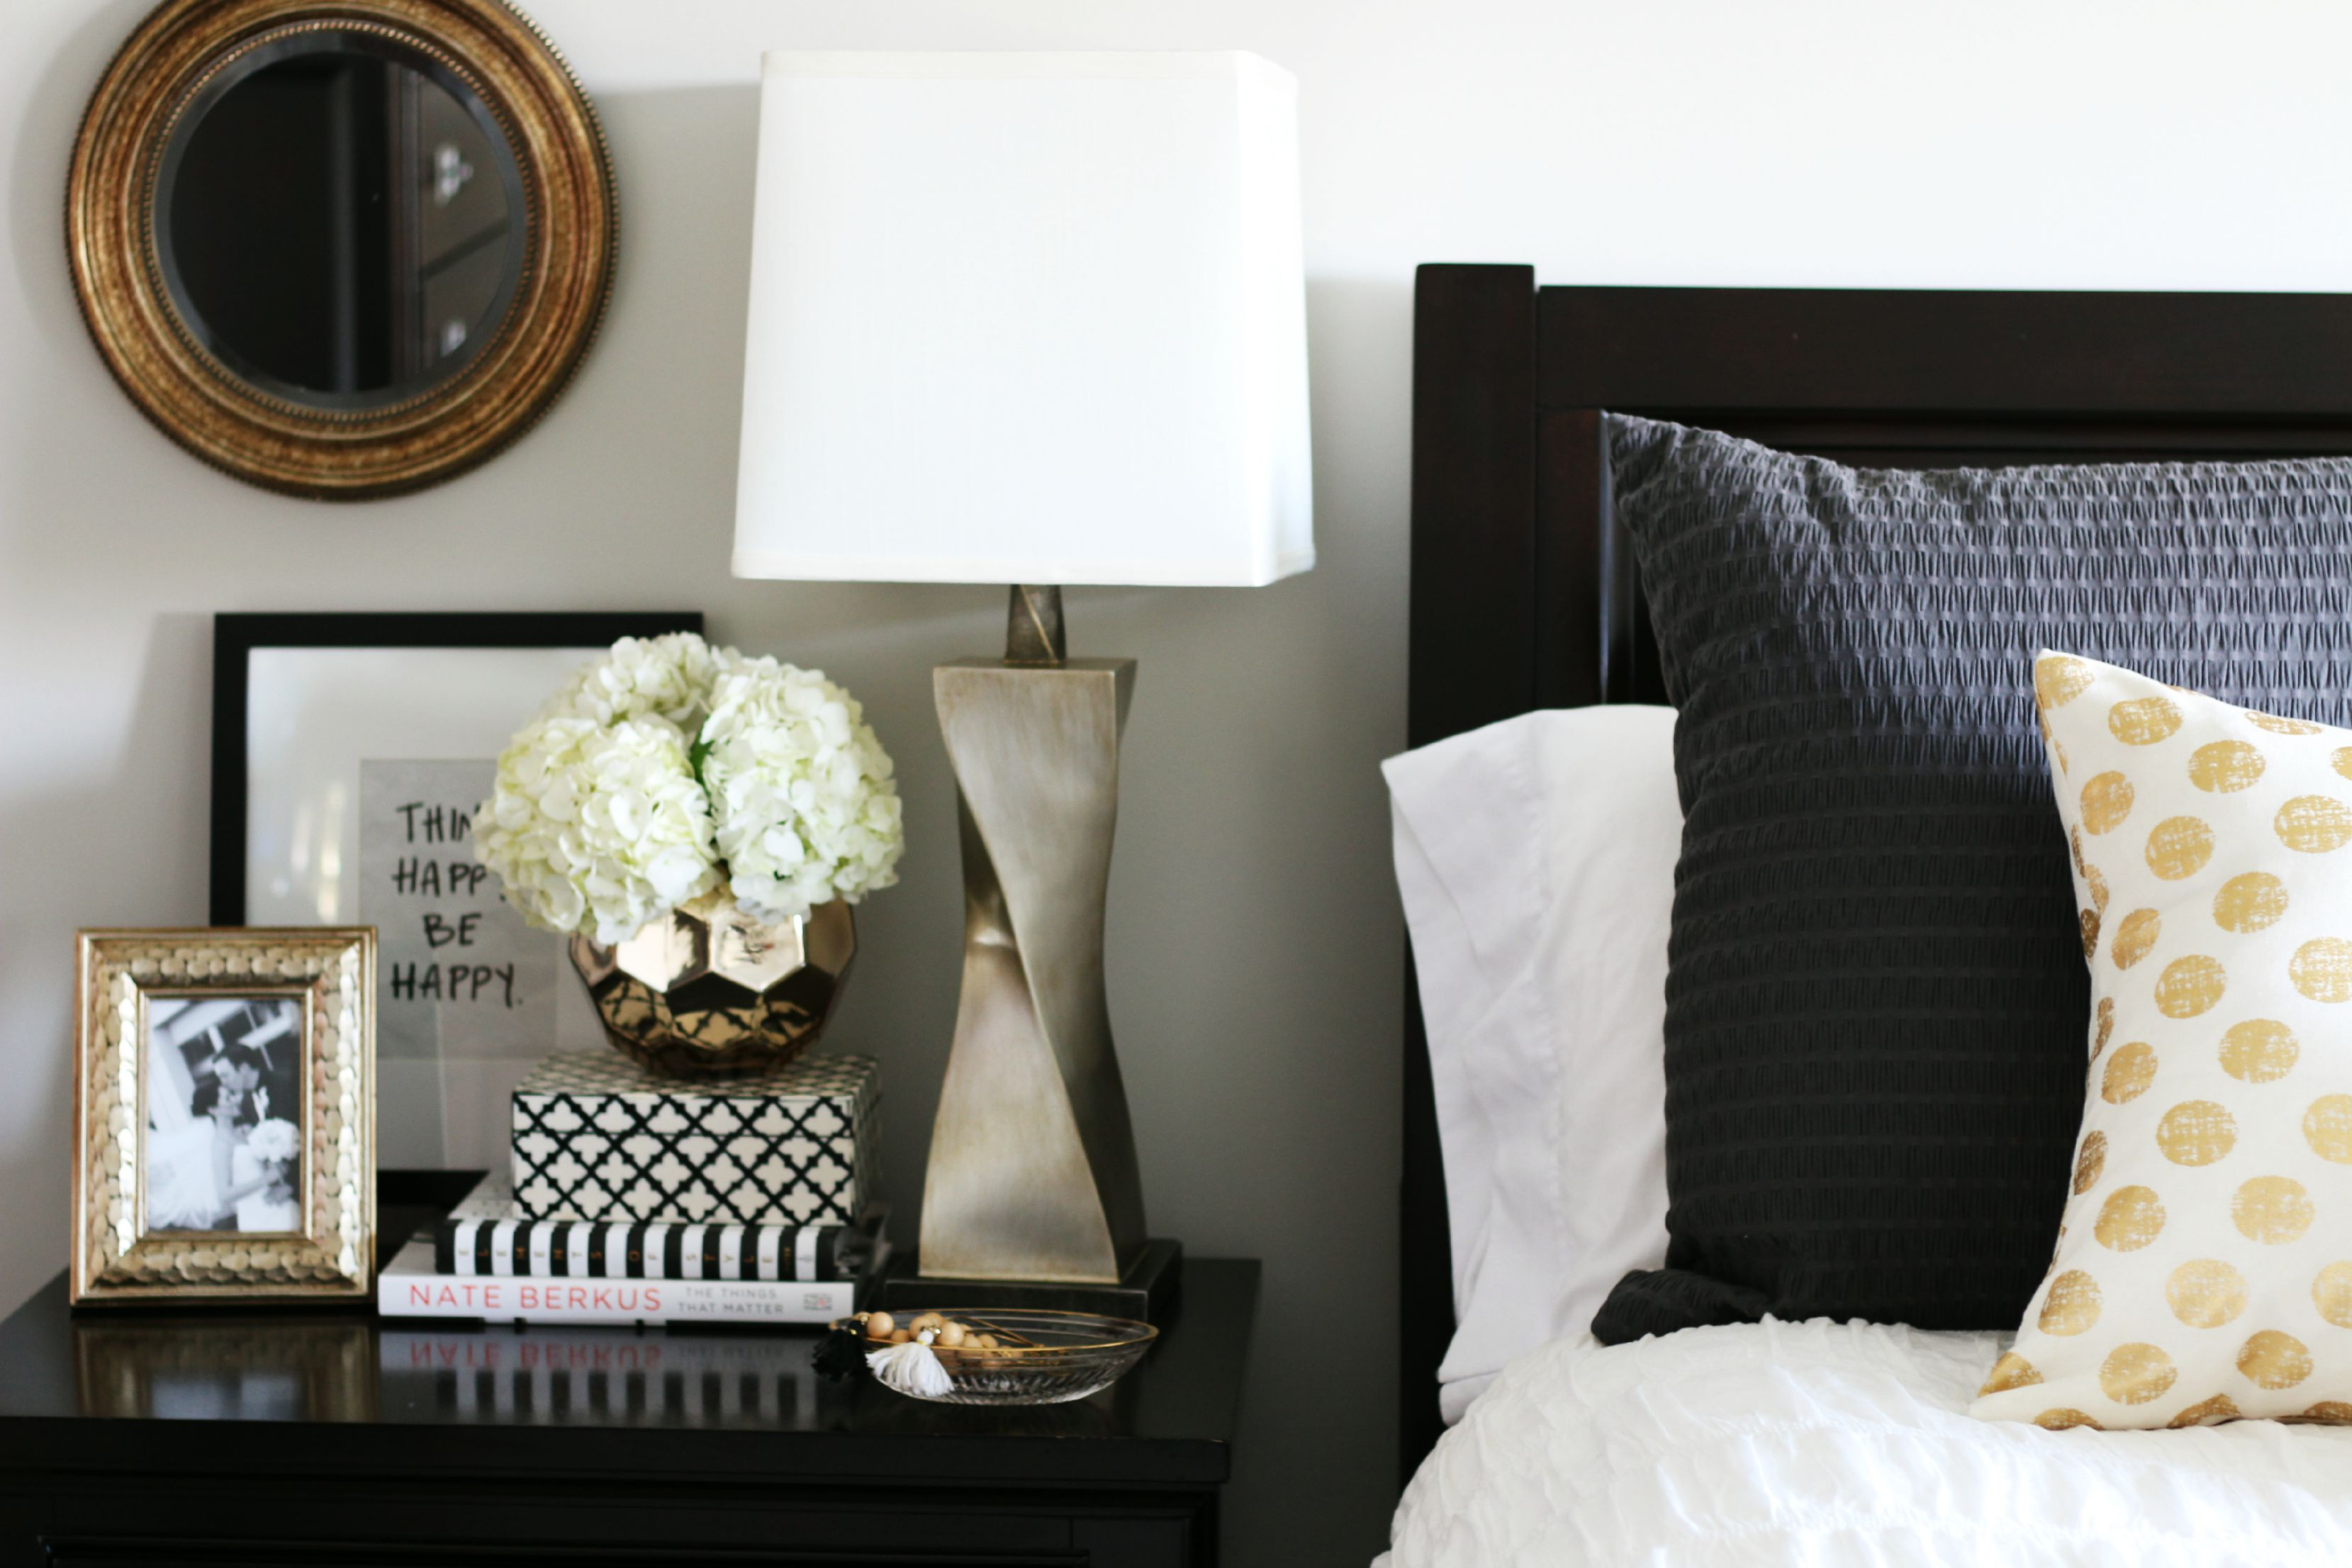 9 ways to make your bedroom more romantic beautify your bedside don t settle for a nightstand that only serves as a parking space for keys books or just about anything use this space to display